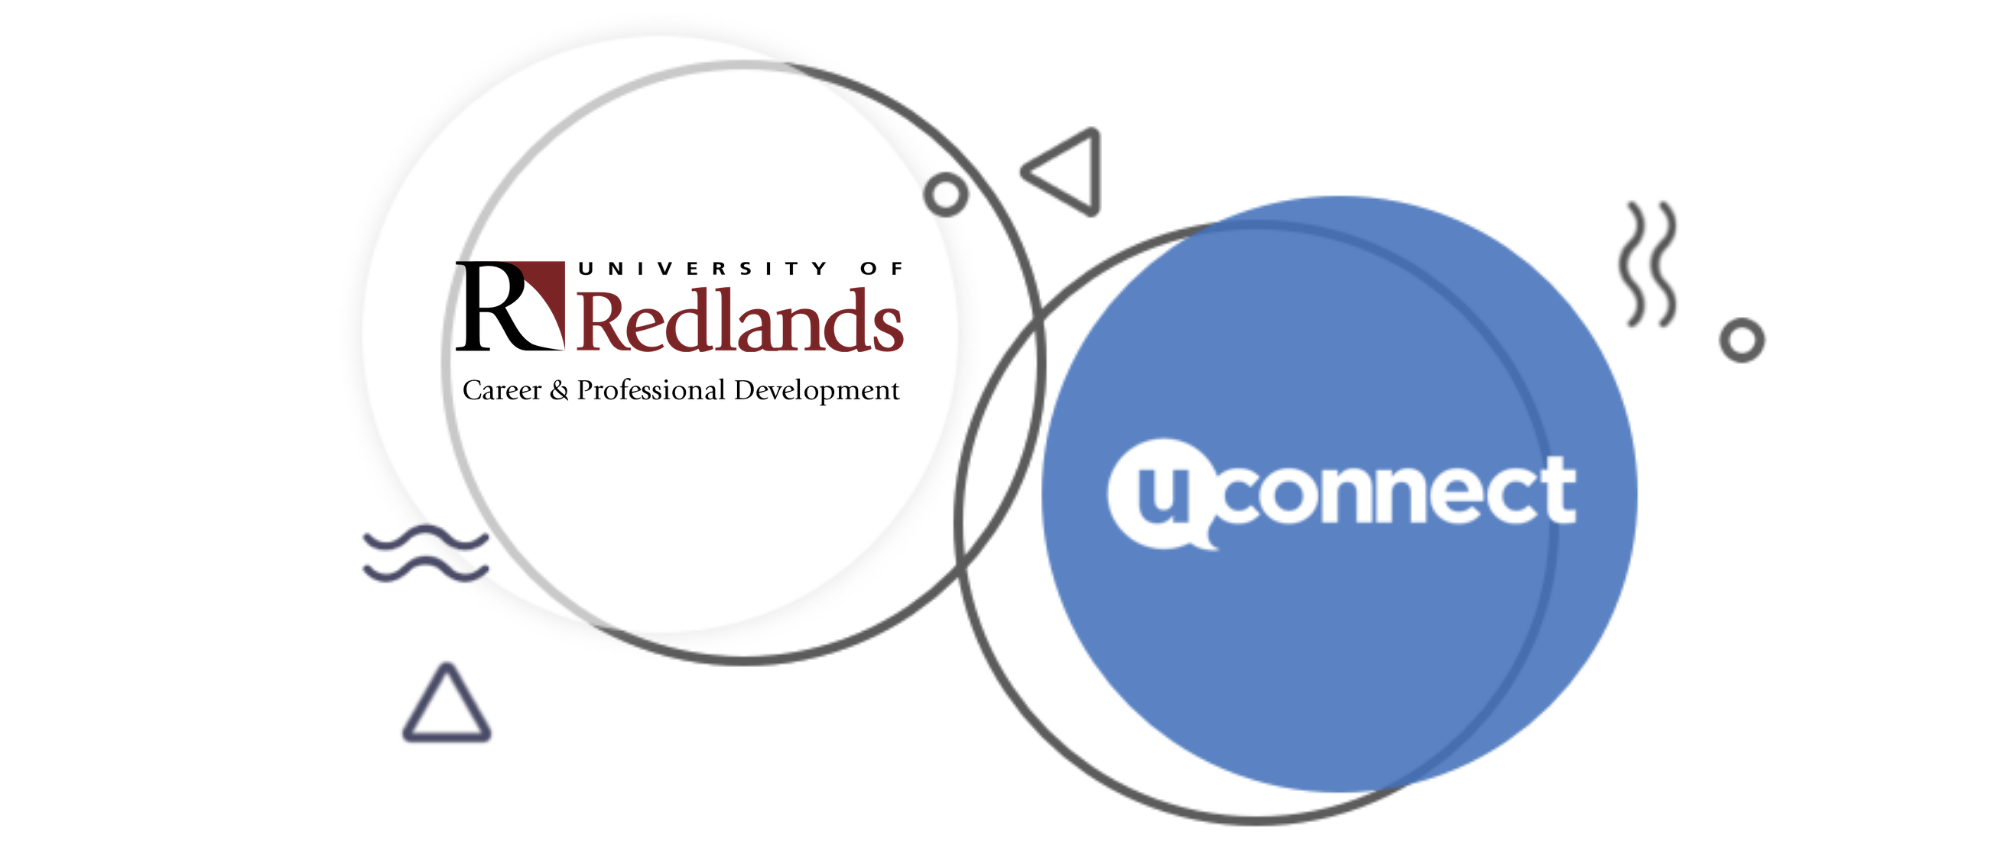 The University of Redlands Launches New Virtual Career Center to Make Career Accessible For All